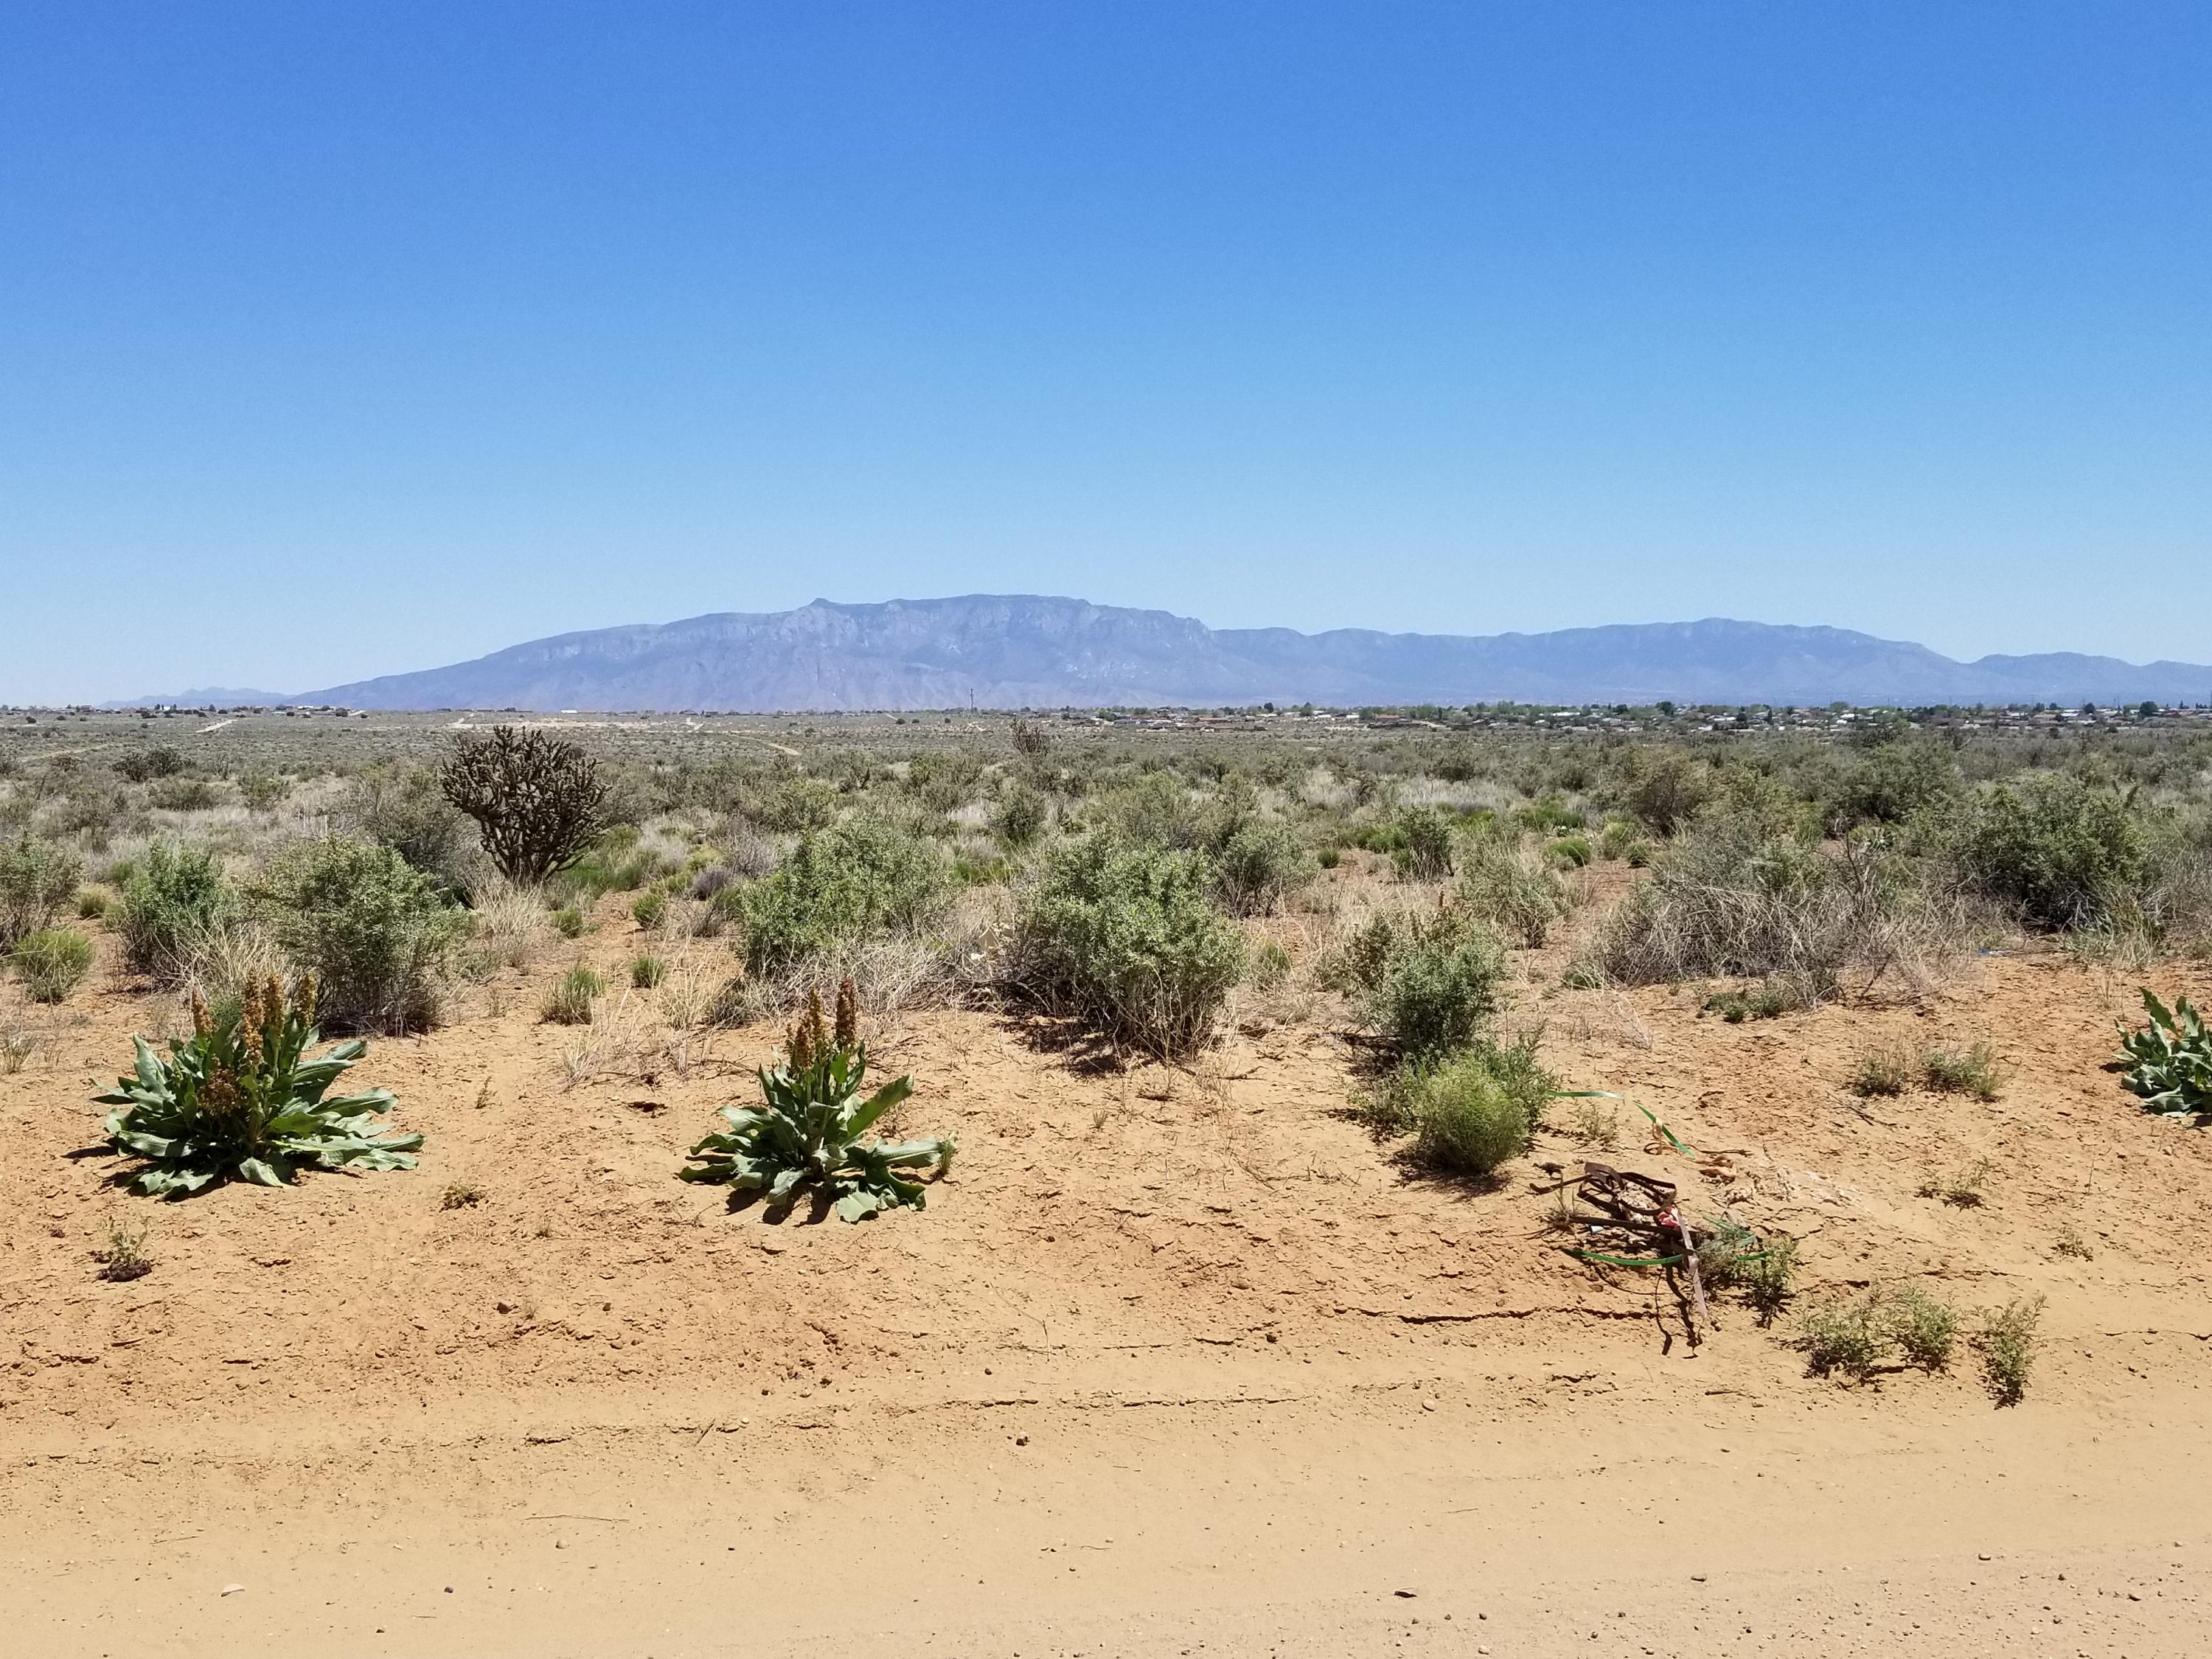 14th Street SW, Rio Rancho, NM 87124 - Rio Rancho, NM real estate listing